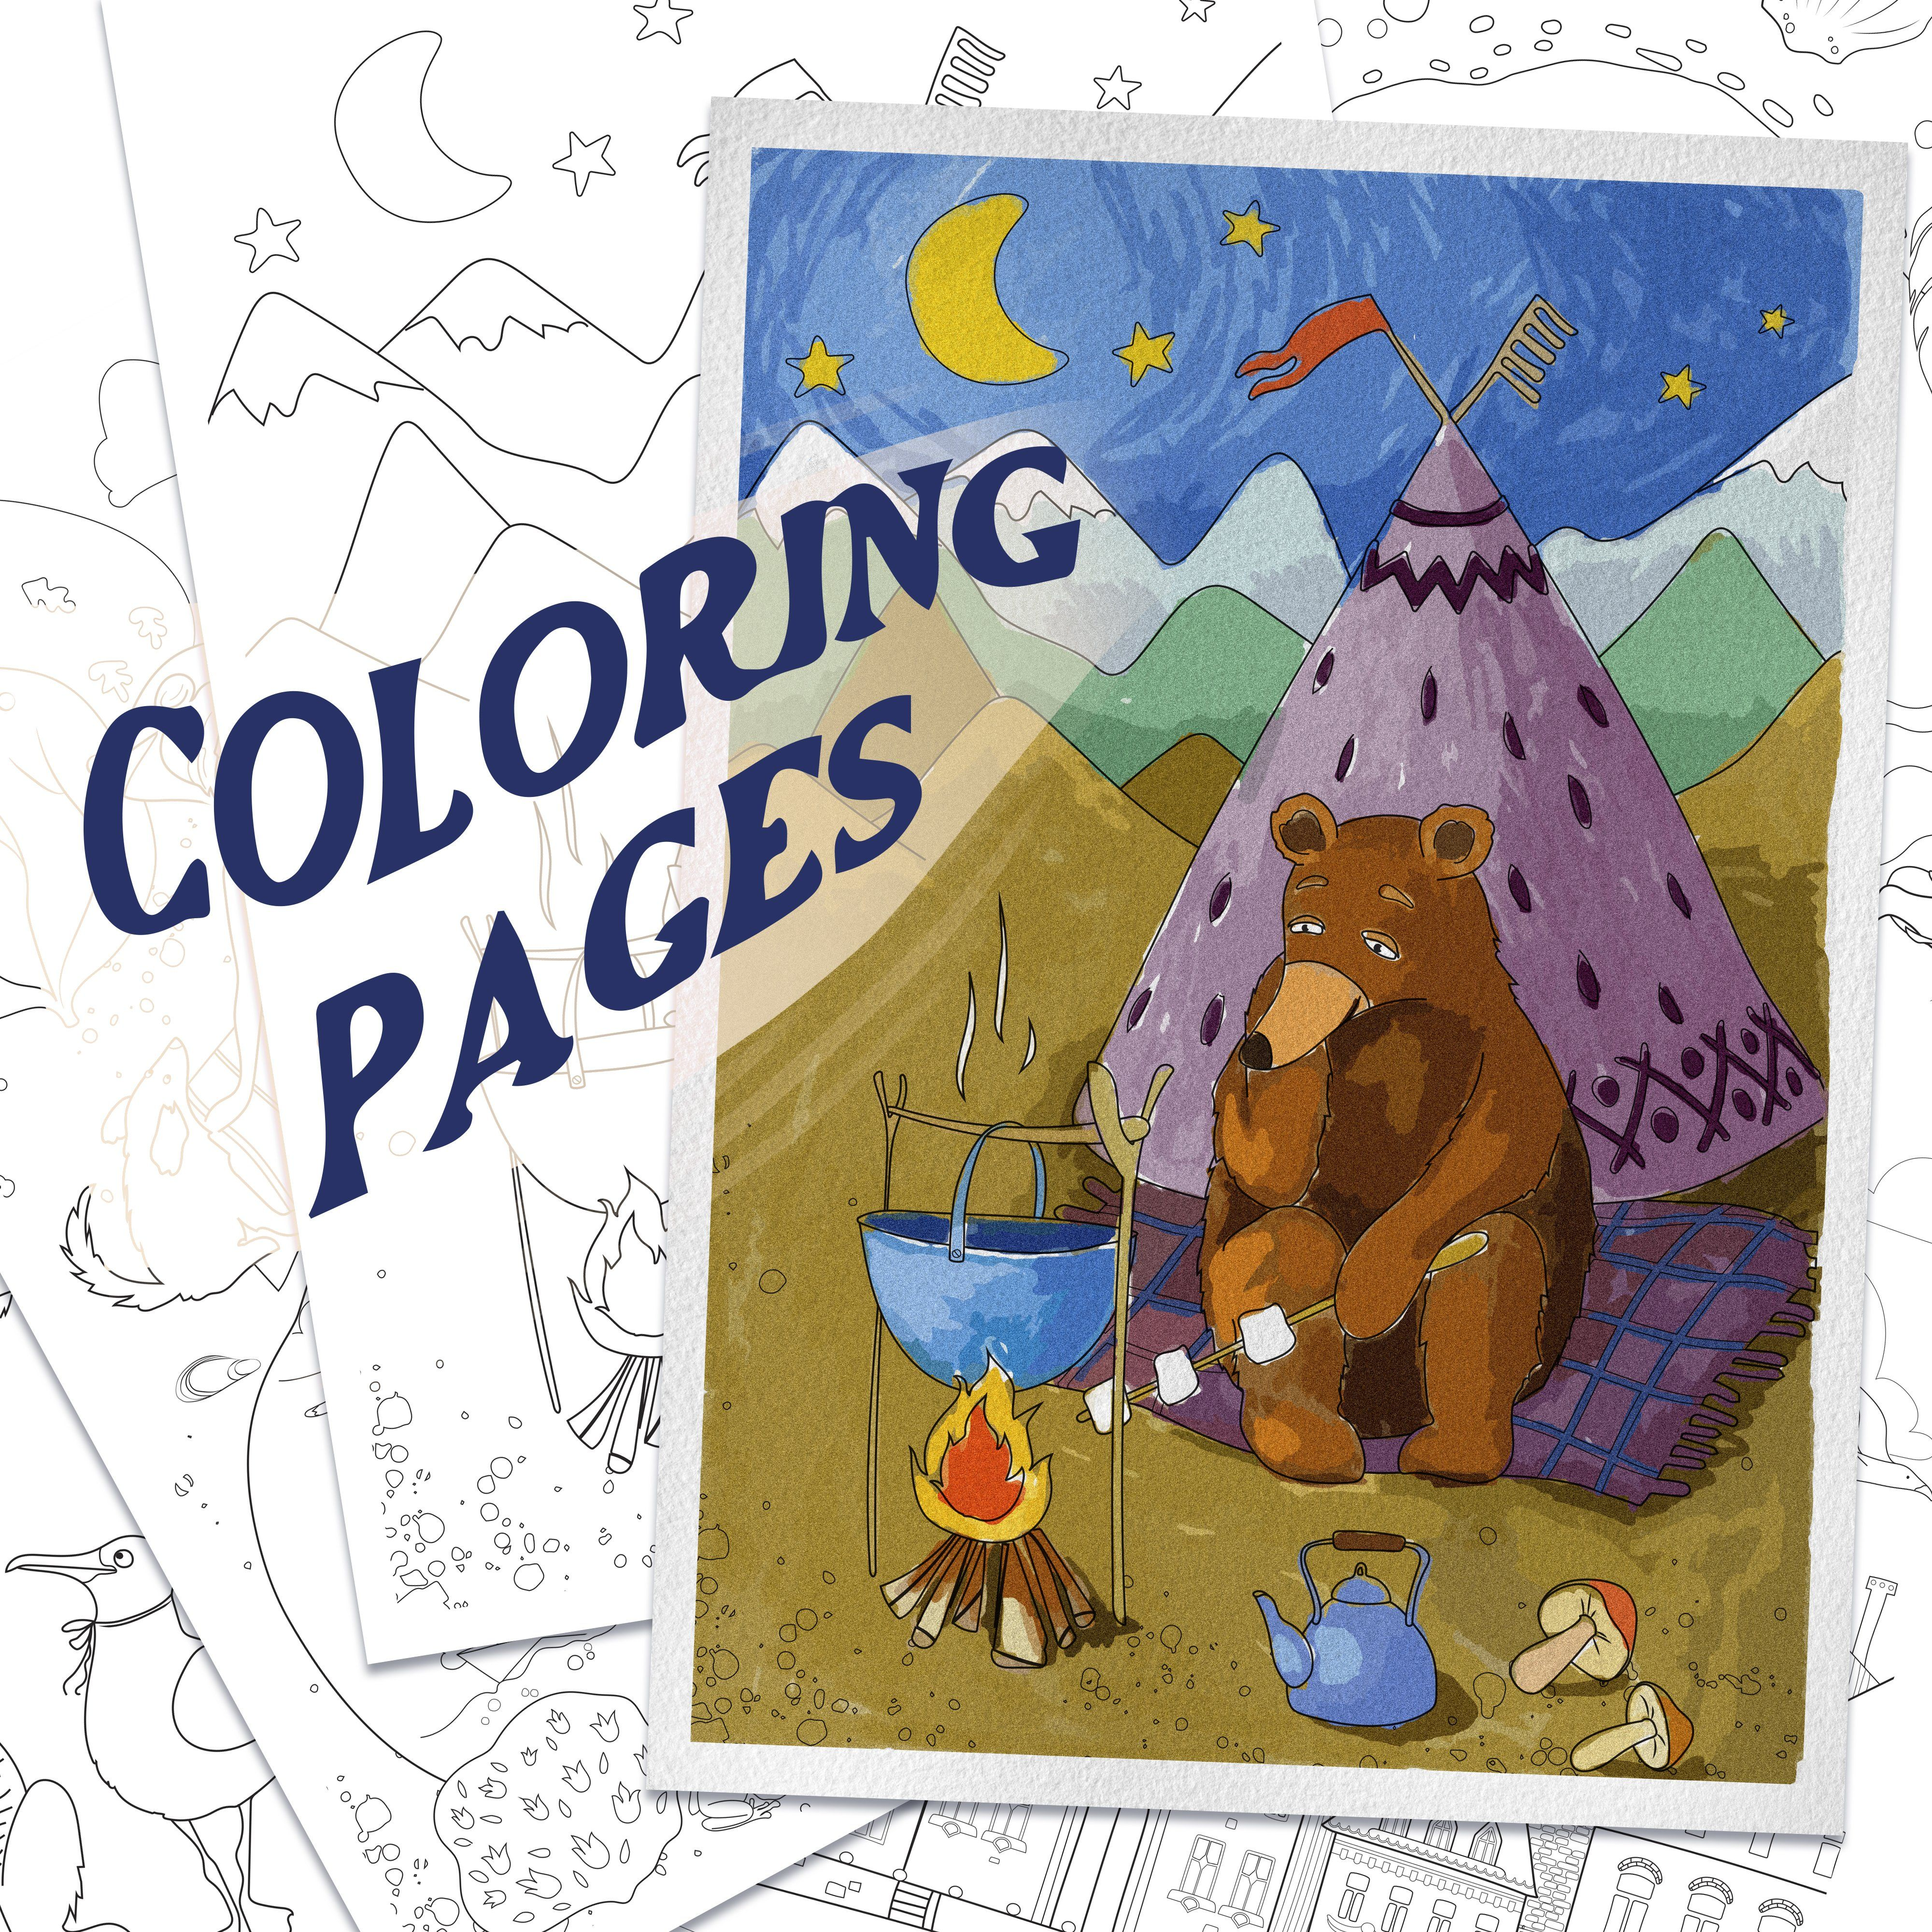 Coloring Pages With Funny Animals Journeys And Summer Stuff 673995 Coloring Pages Design Bundles In 2020 Coloring Pages Hand Lettering Cards Alphabet Illustration